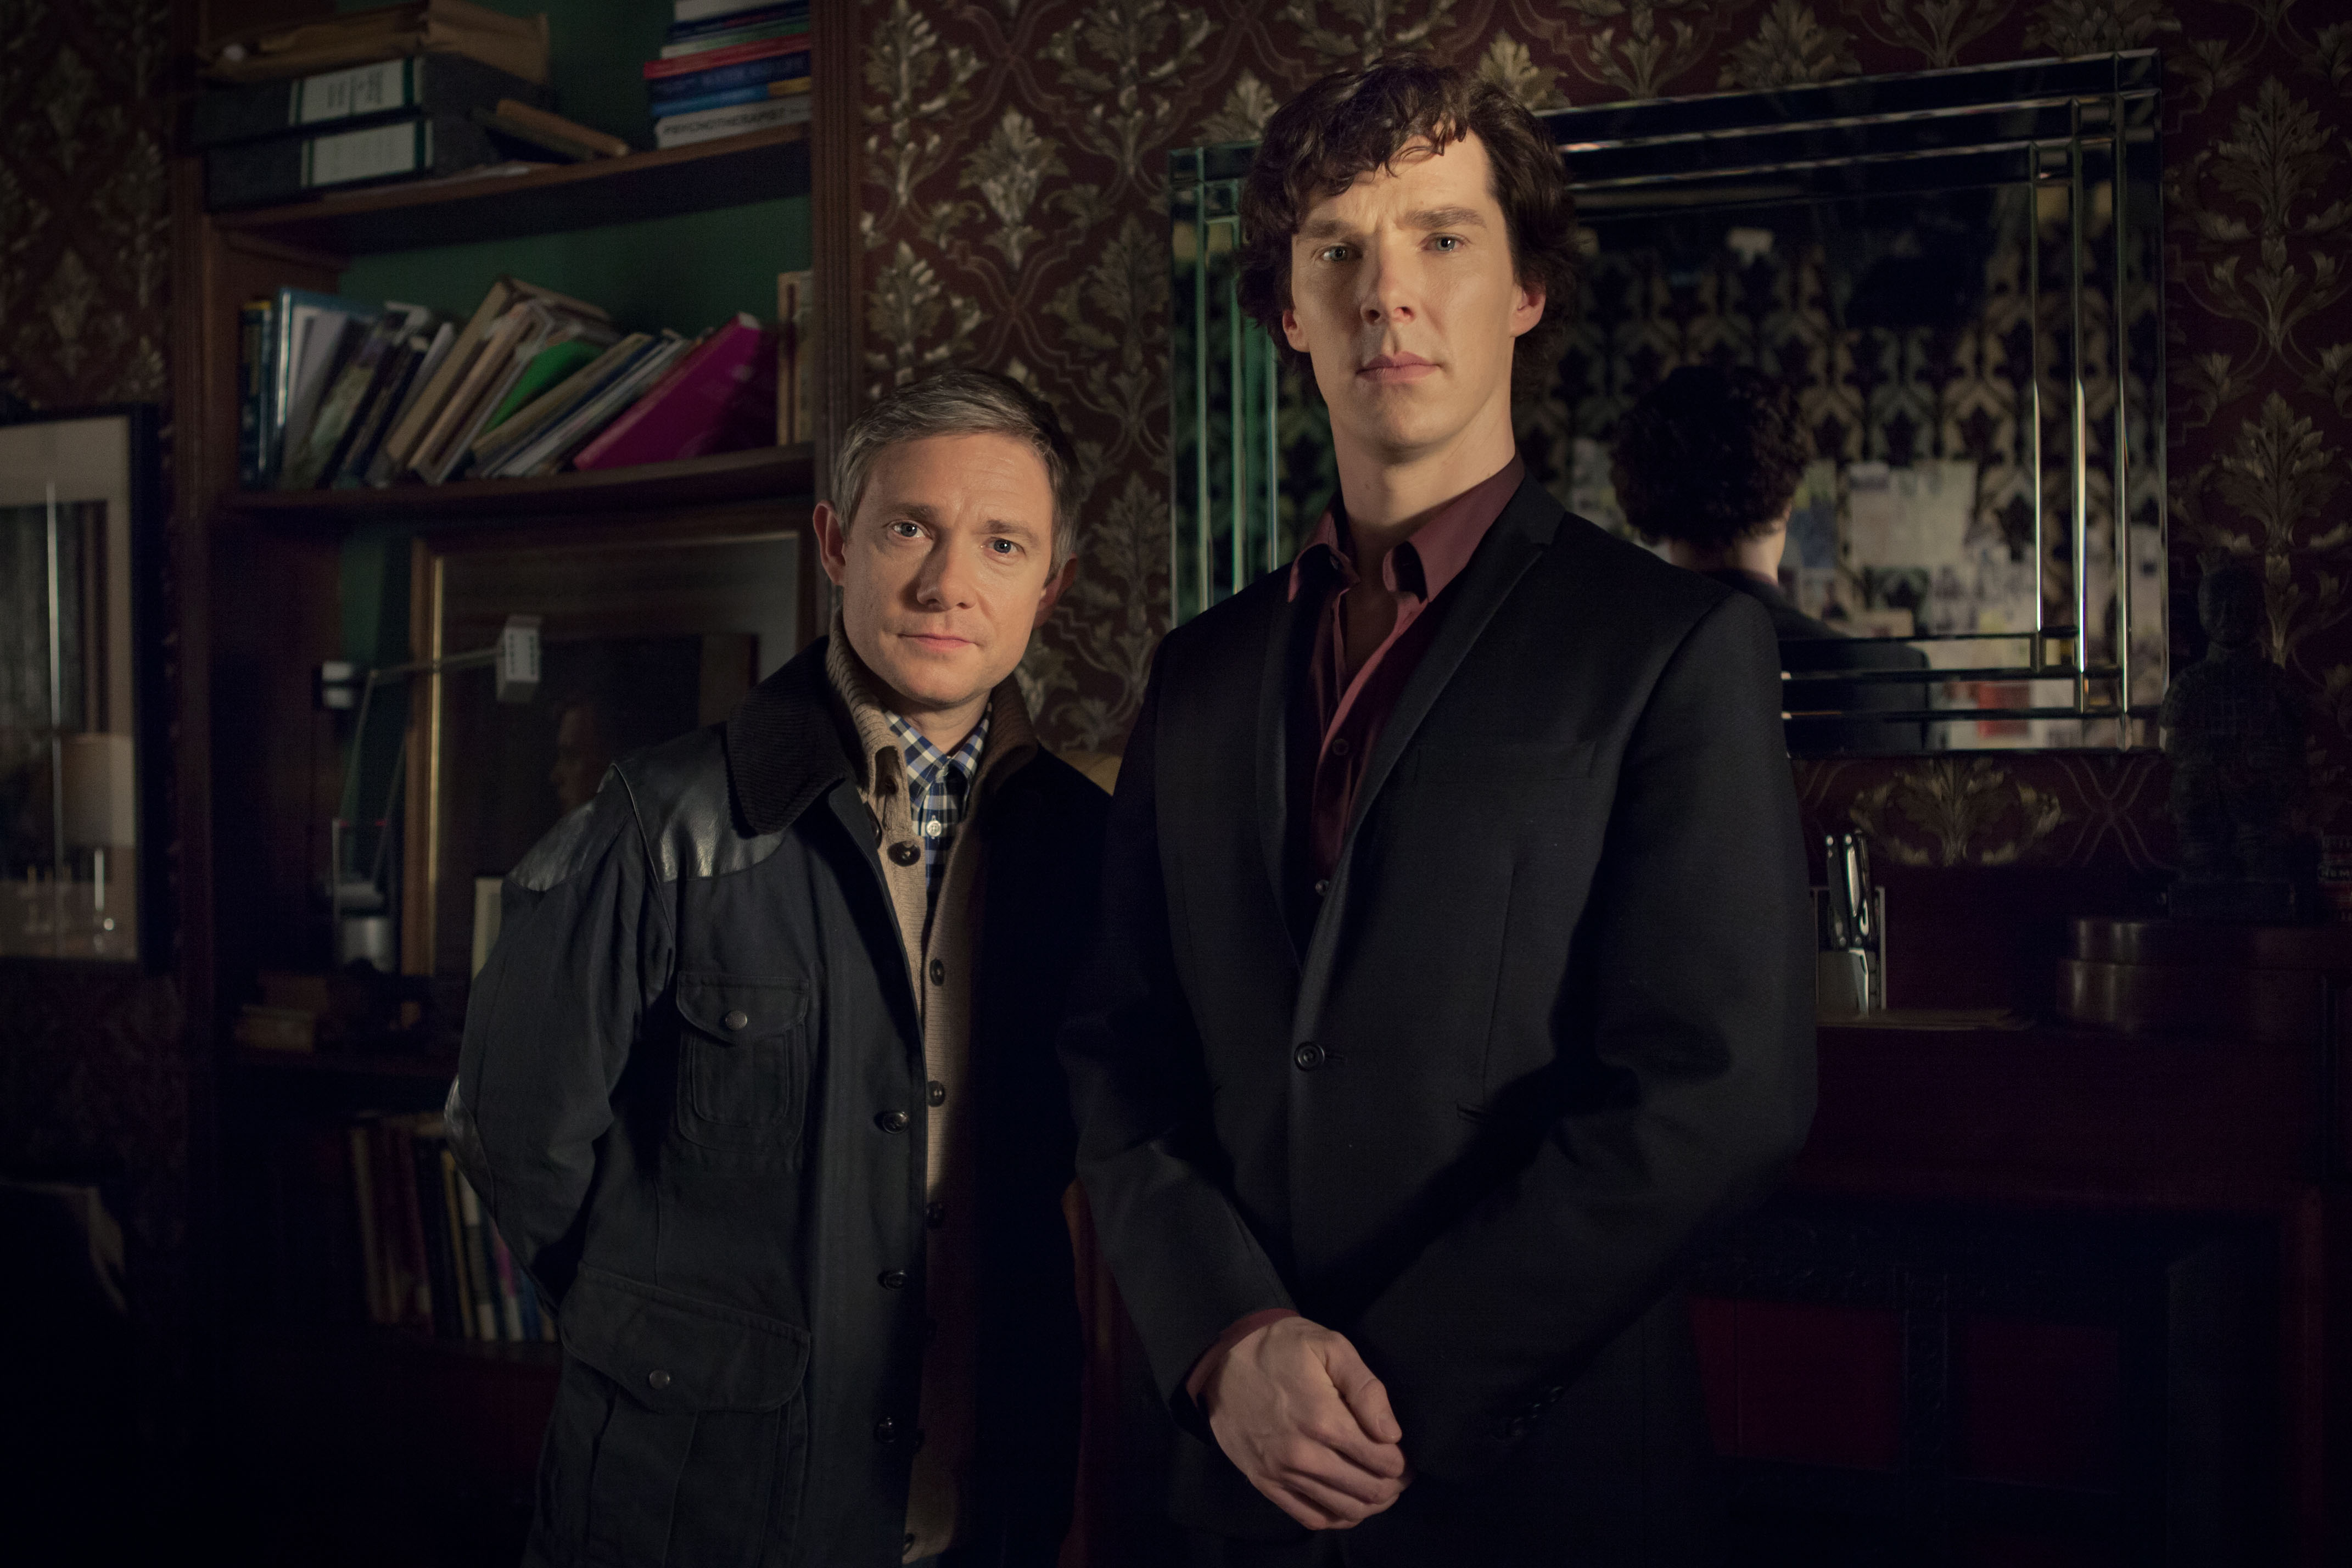 BBC Drama Sherlock scoops seven Emmy awards